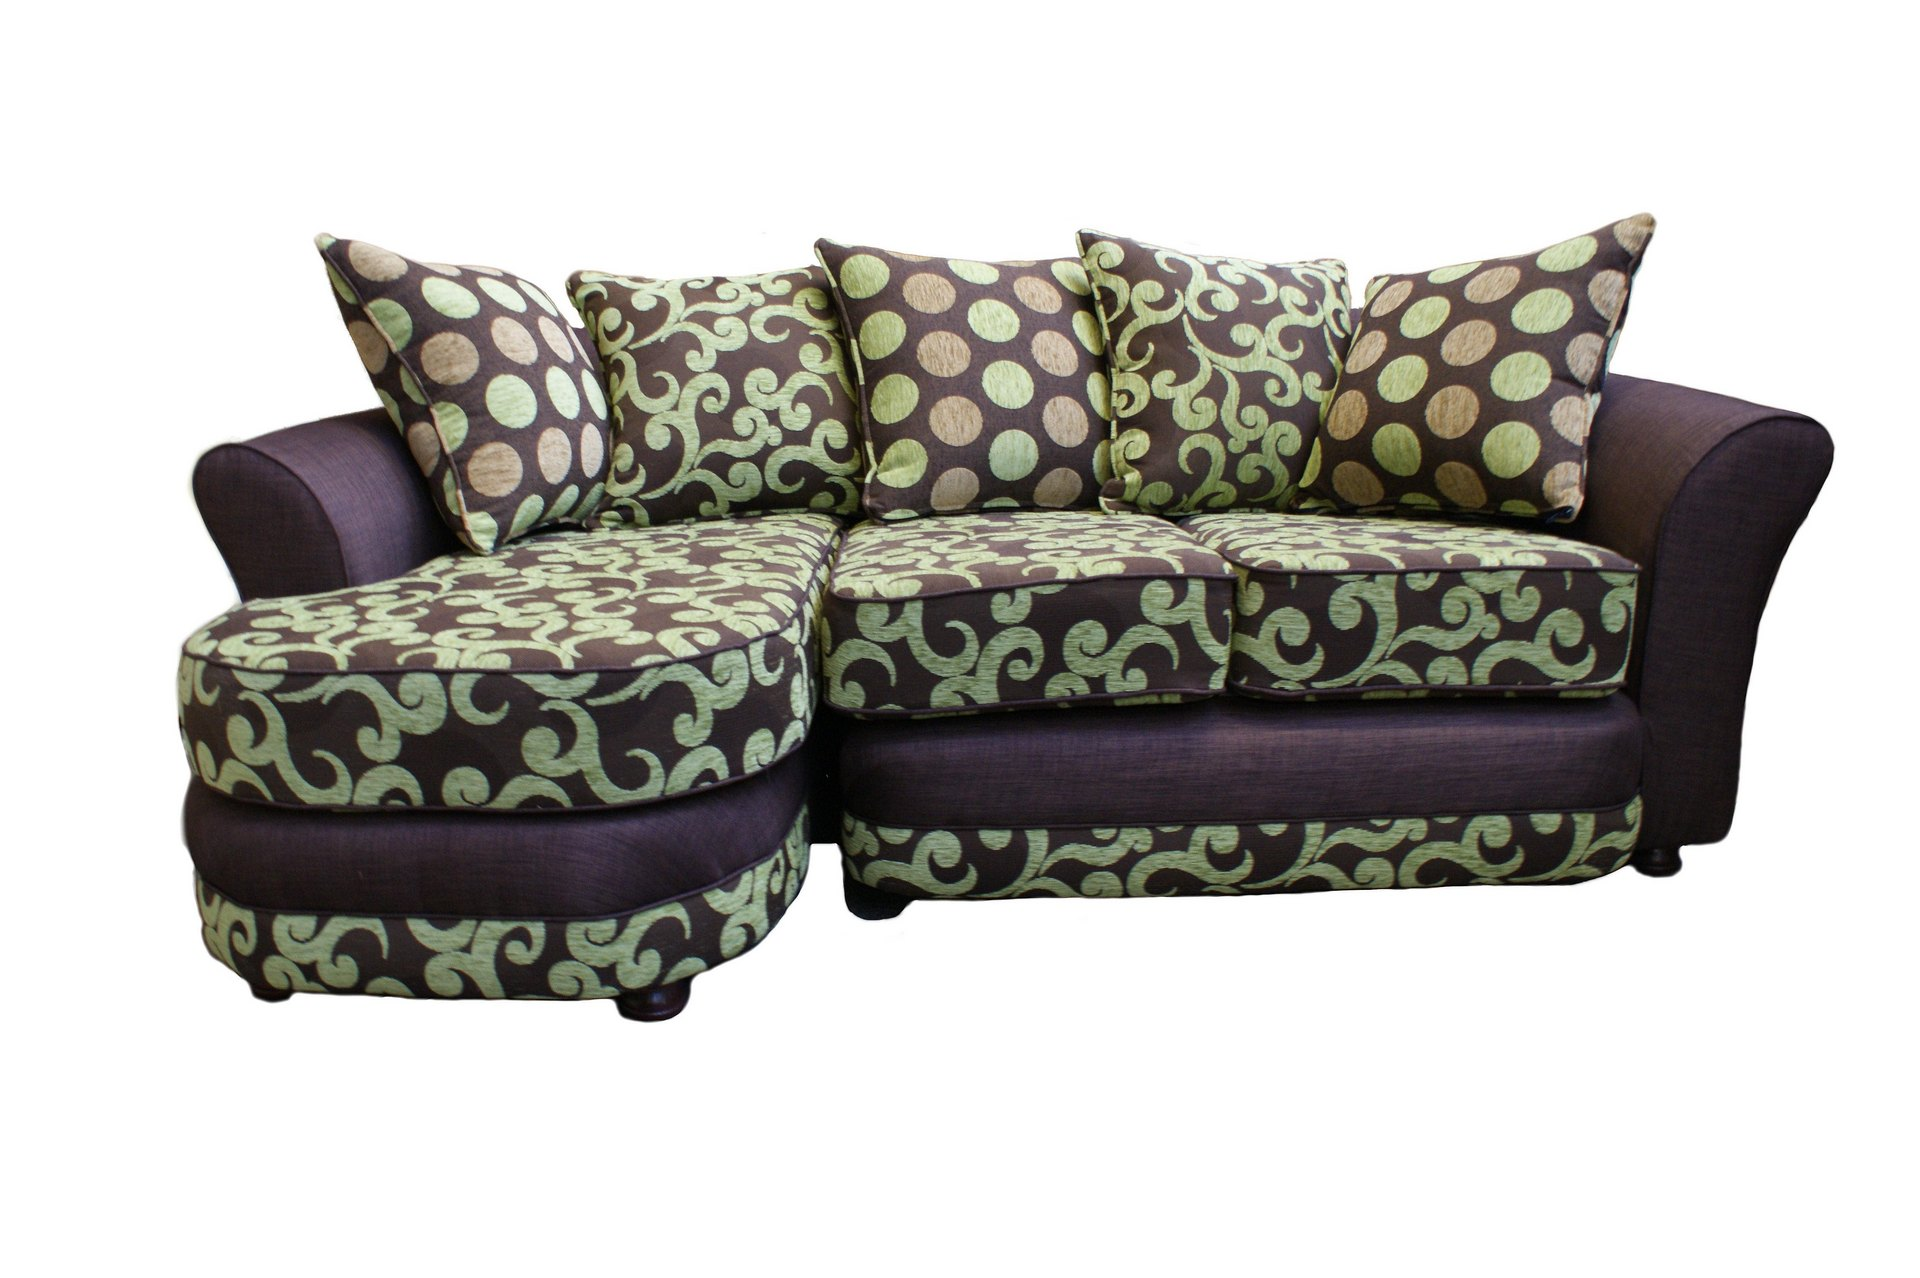 Online sofa sale designersofas4u blog for Fabric couches for sale